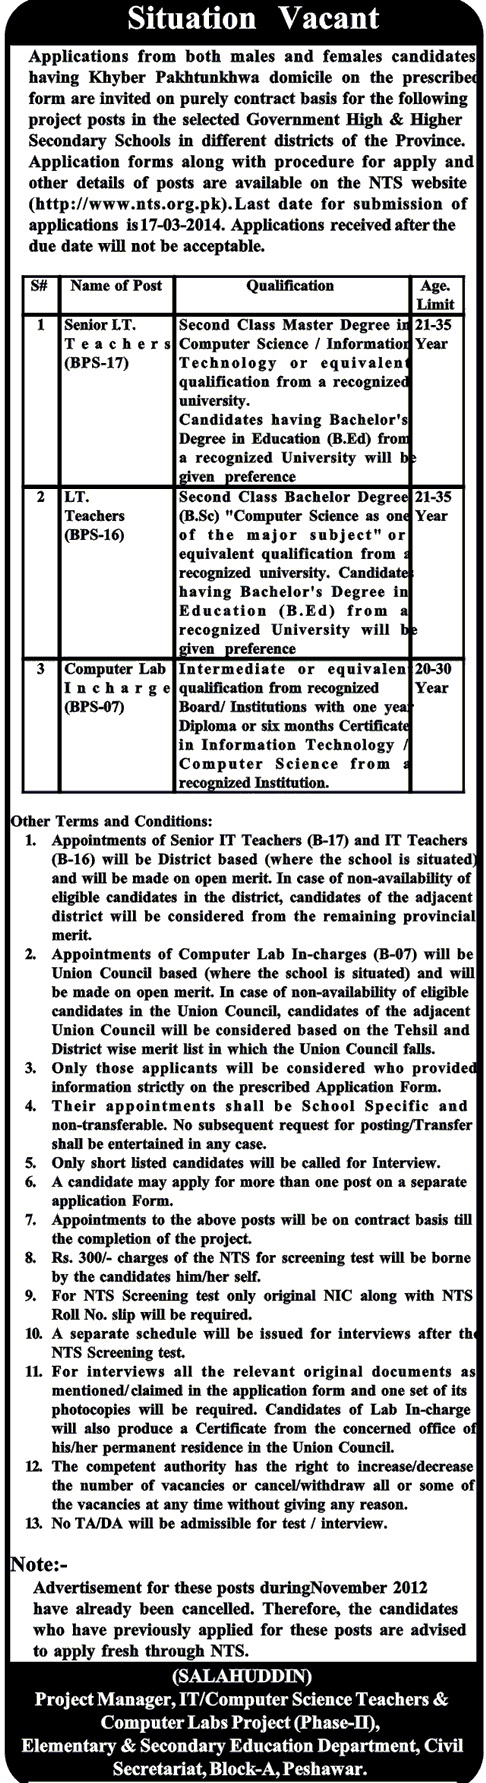 KPK Education Department NTS Test for IT Teachers 2014 Elementary and Secondary Schools